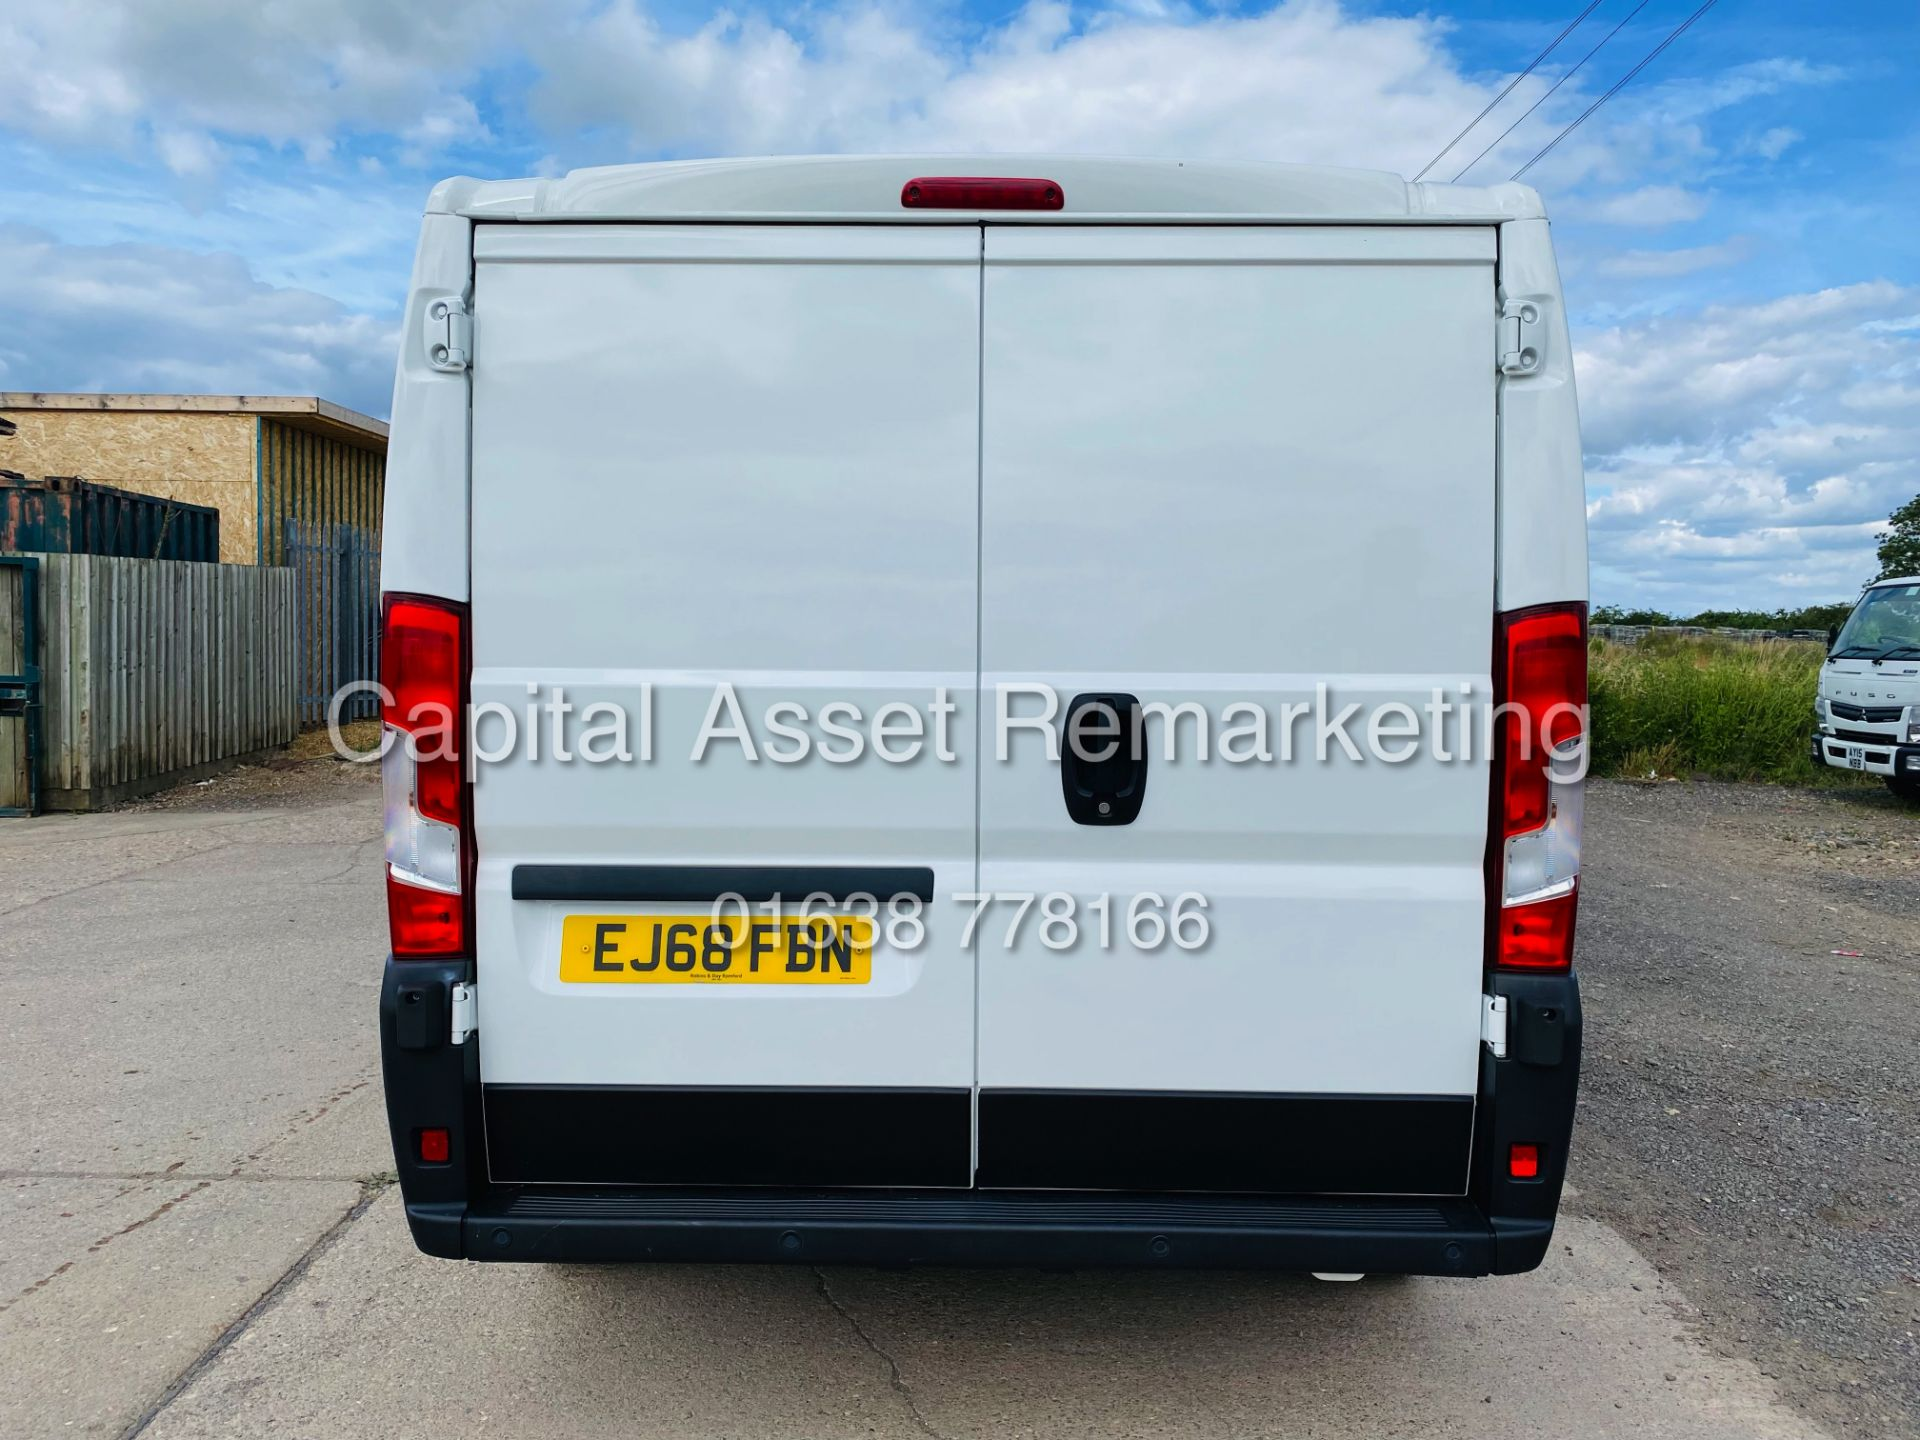 """ON SALE CITROEN RELAY 2.0 BLUE-HDI """"ENTERPRISE"""" L1H1 (2019 MODEL) AIR CON 6882 MILES ON THE CLOCK - Image 10 of 28"""